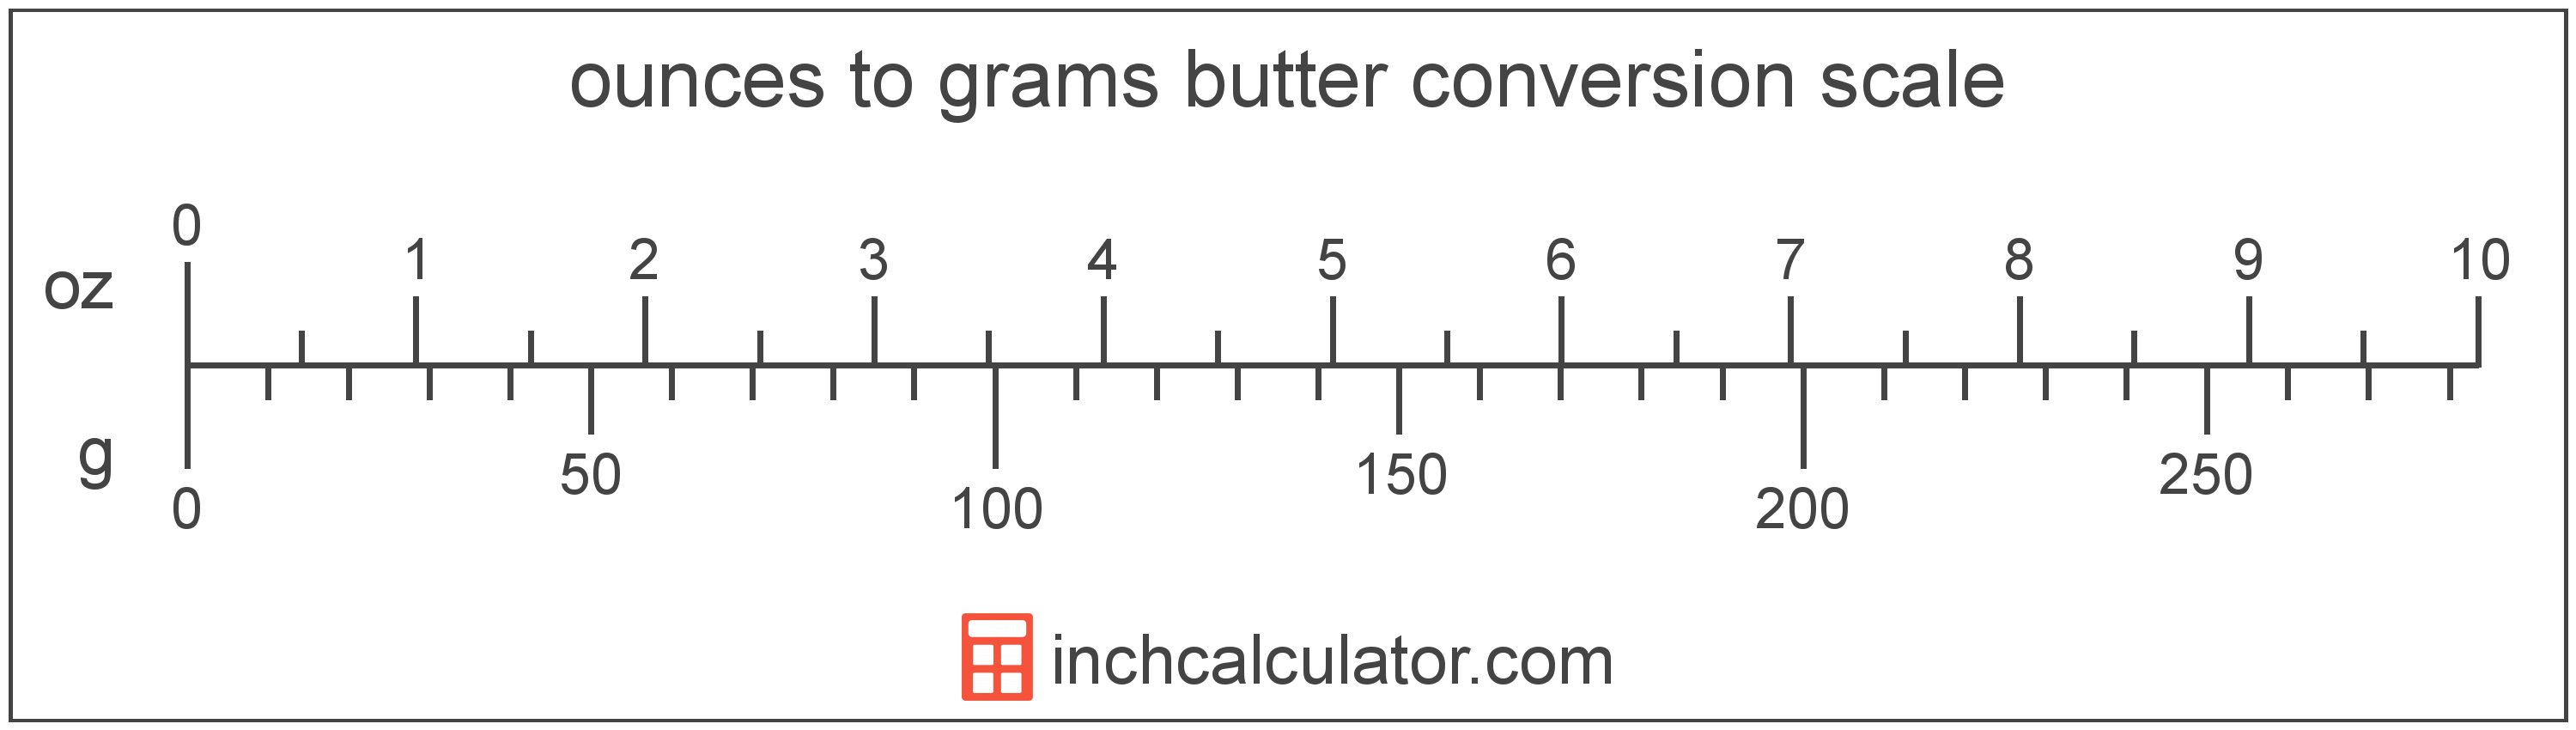 Ounces Of Butter To Grams Conversion Oz To G Inch Calculator